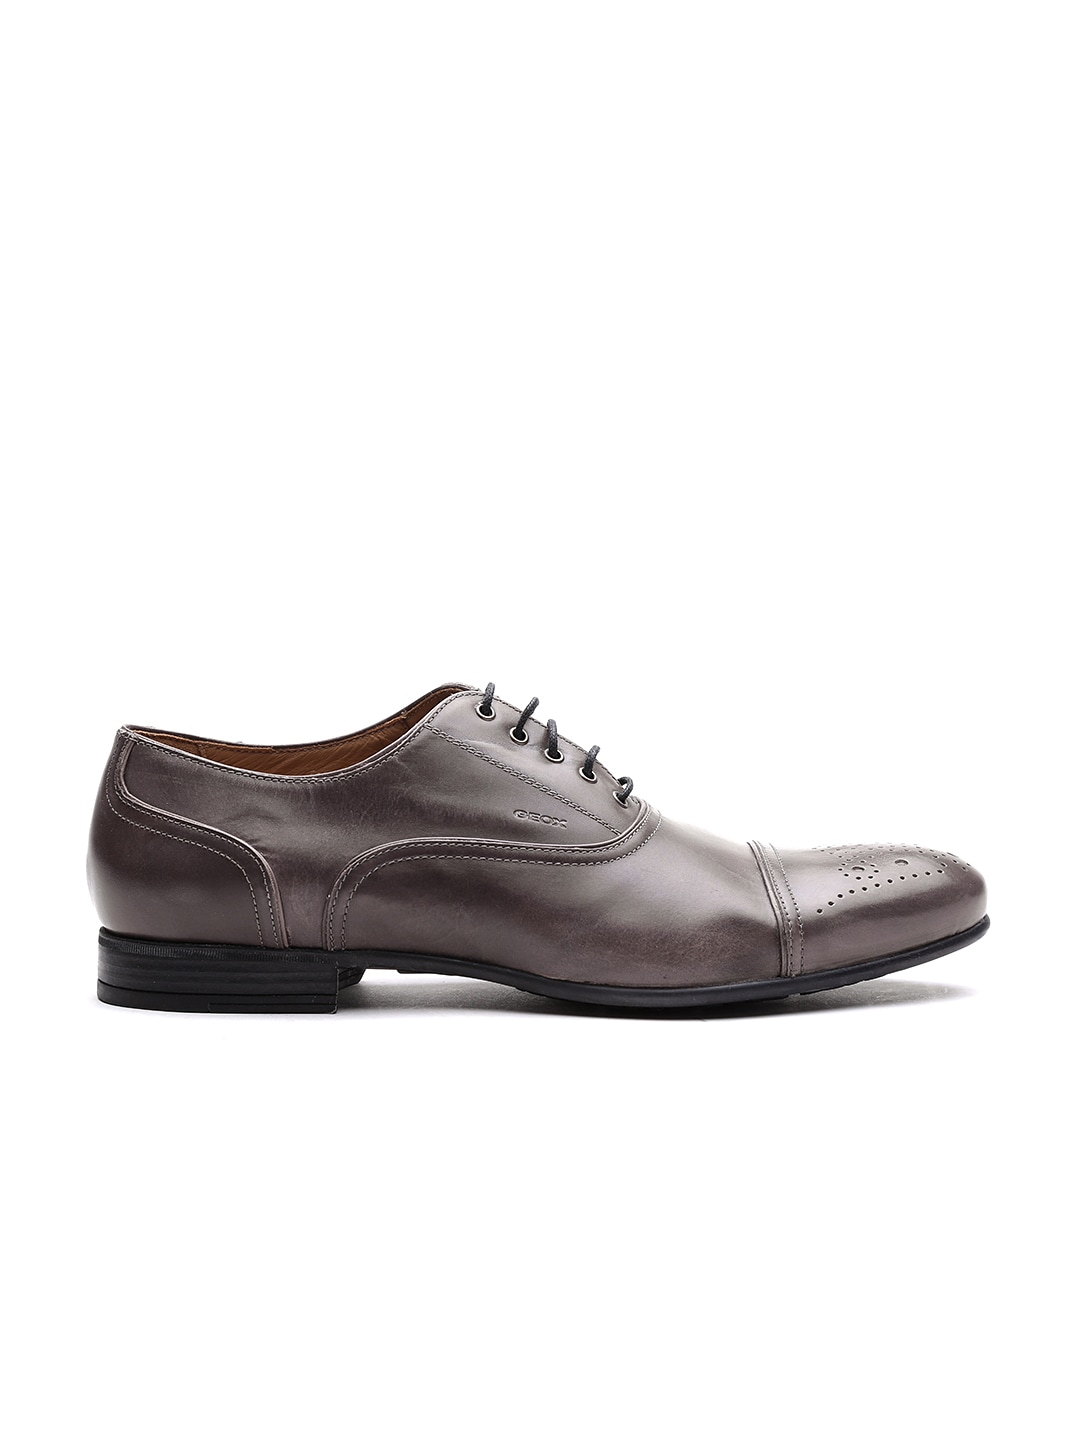 Patent Leather Shoes Buy Patent Leather Shoes Online In India At